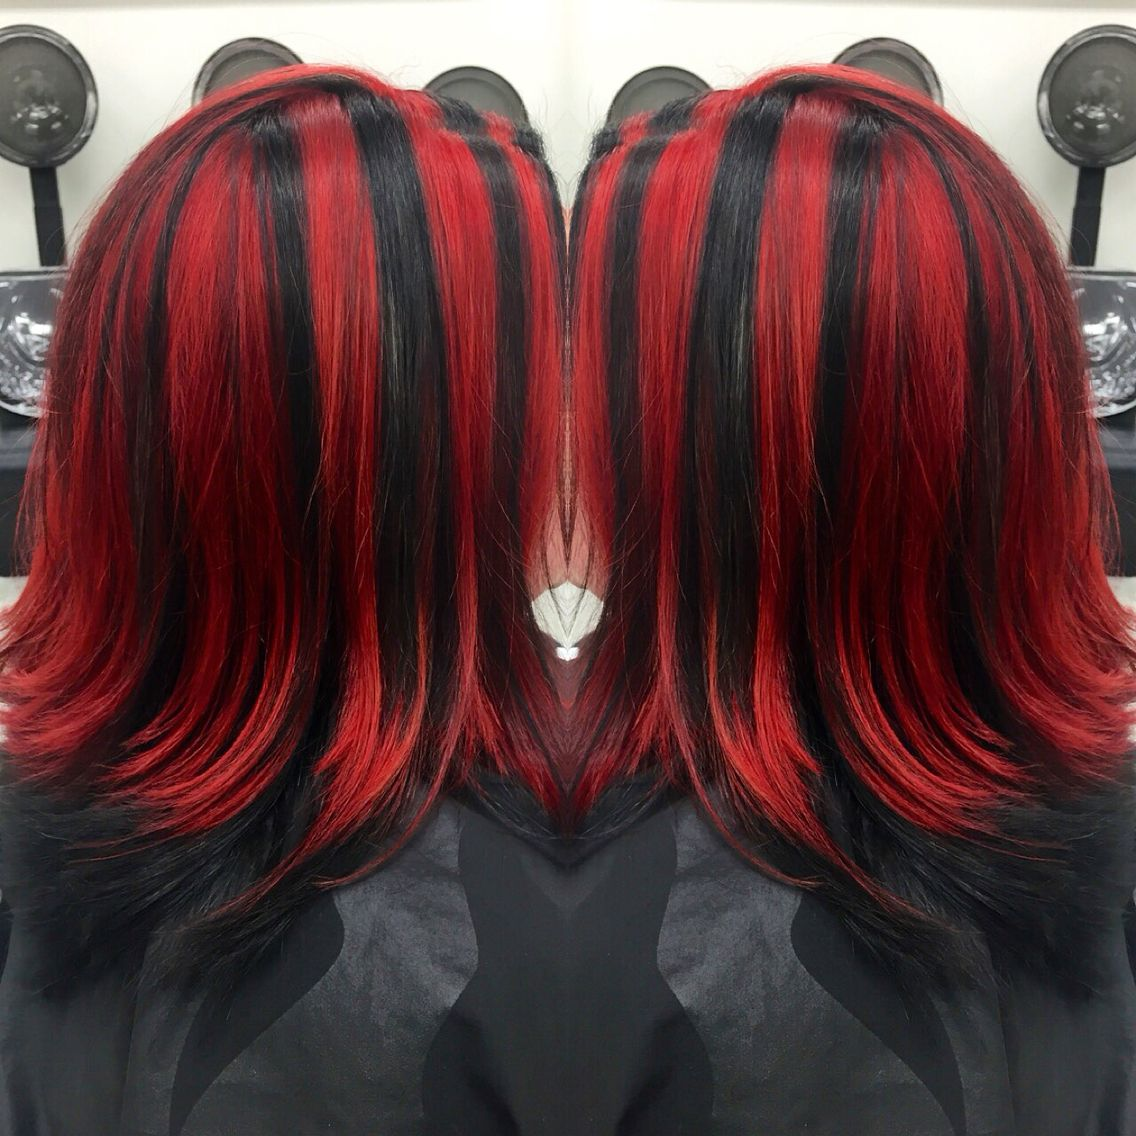 Red And Black Chunky Highlights Hair Highlights Red Ombre Hair Hair Styles